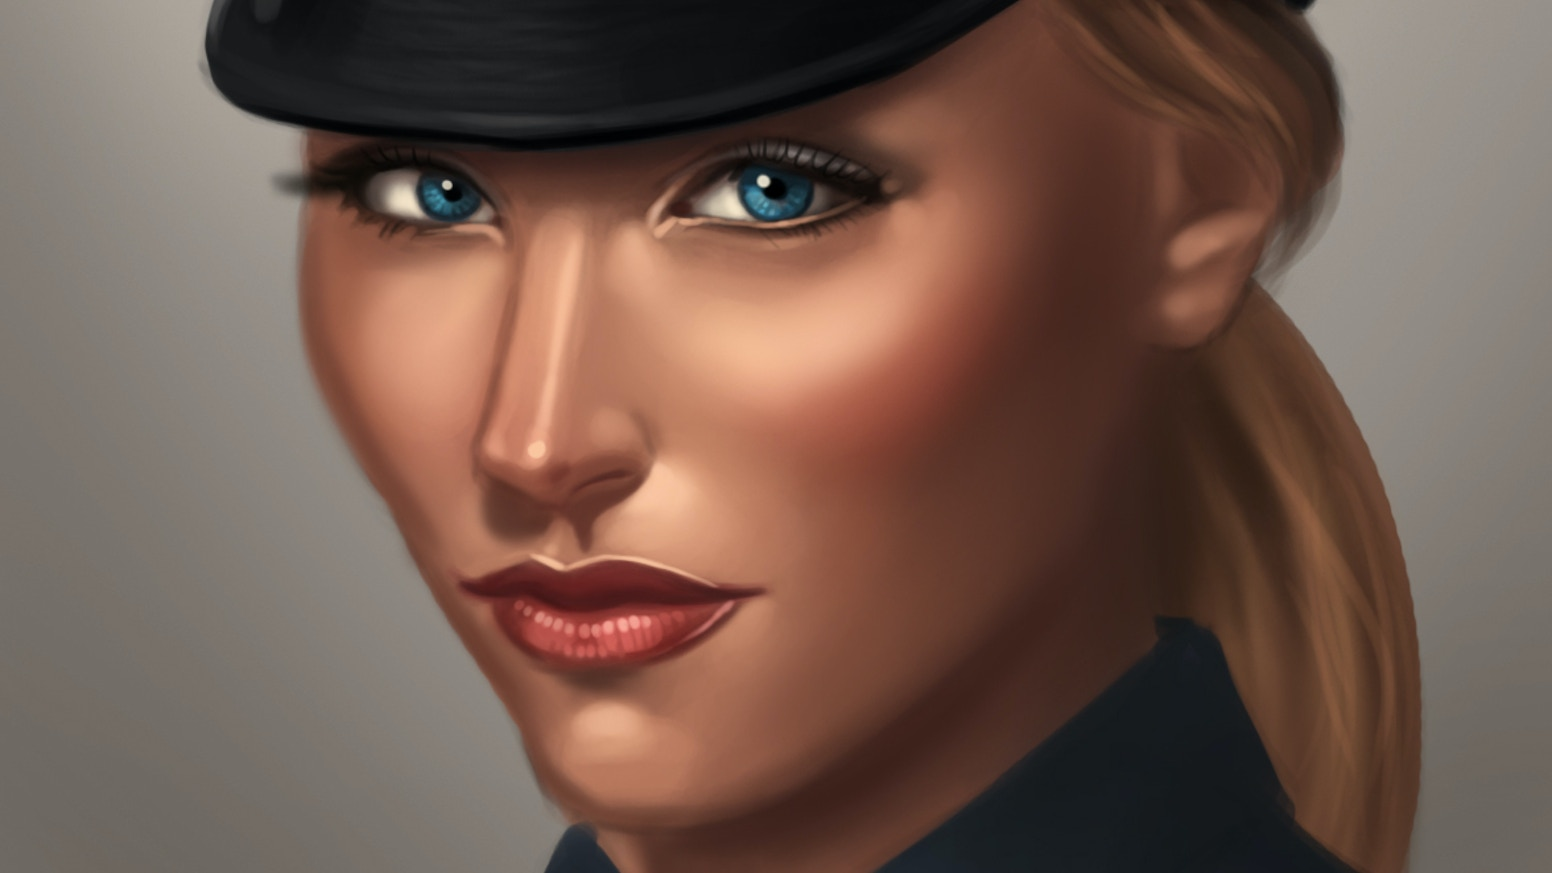 Police Precinct is a cooperative game where the players take on the roles as police officers, with different areas of expertise.